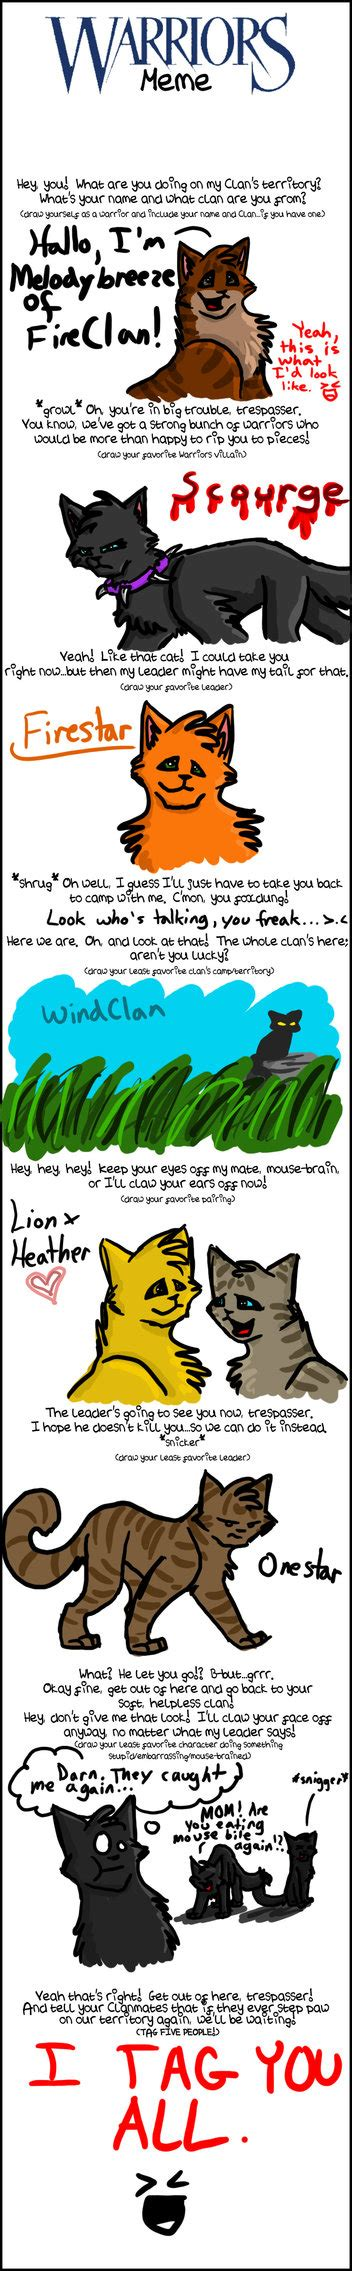 Warrior Cats Memes - my name is twilightstar i am leader of river clan my fave medicine cats are spottedleaf and